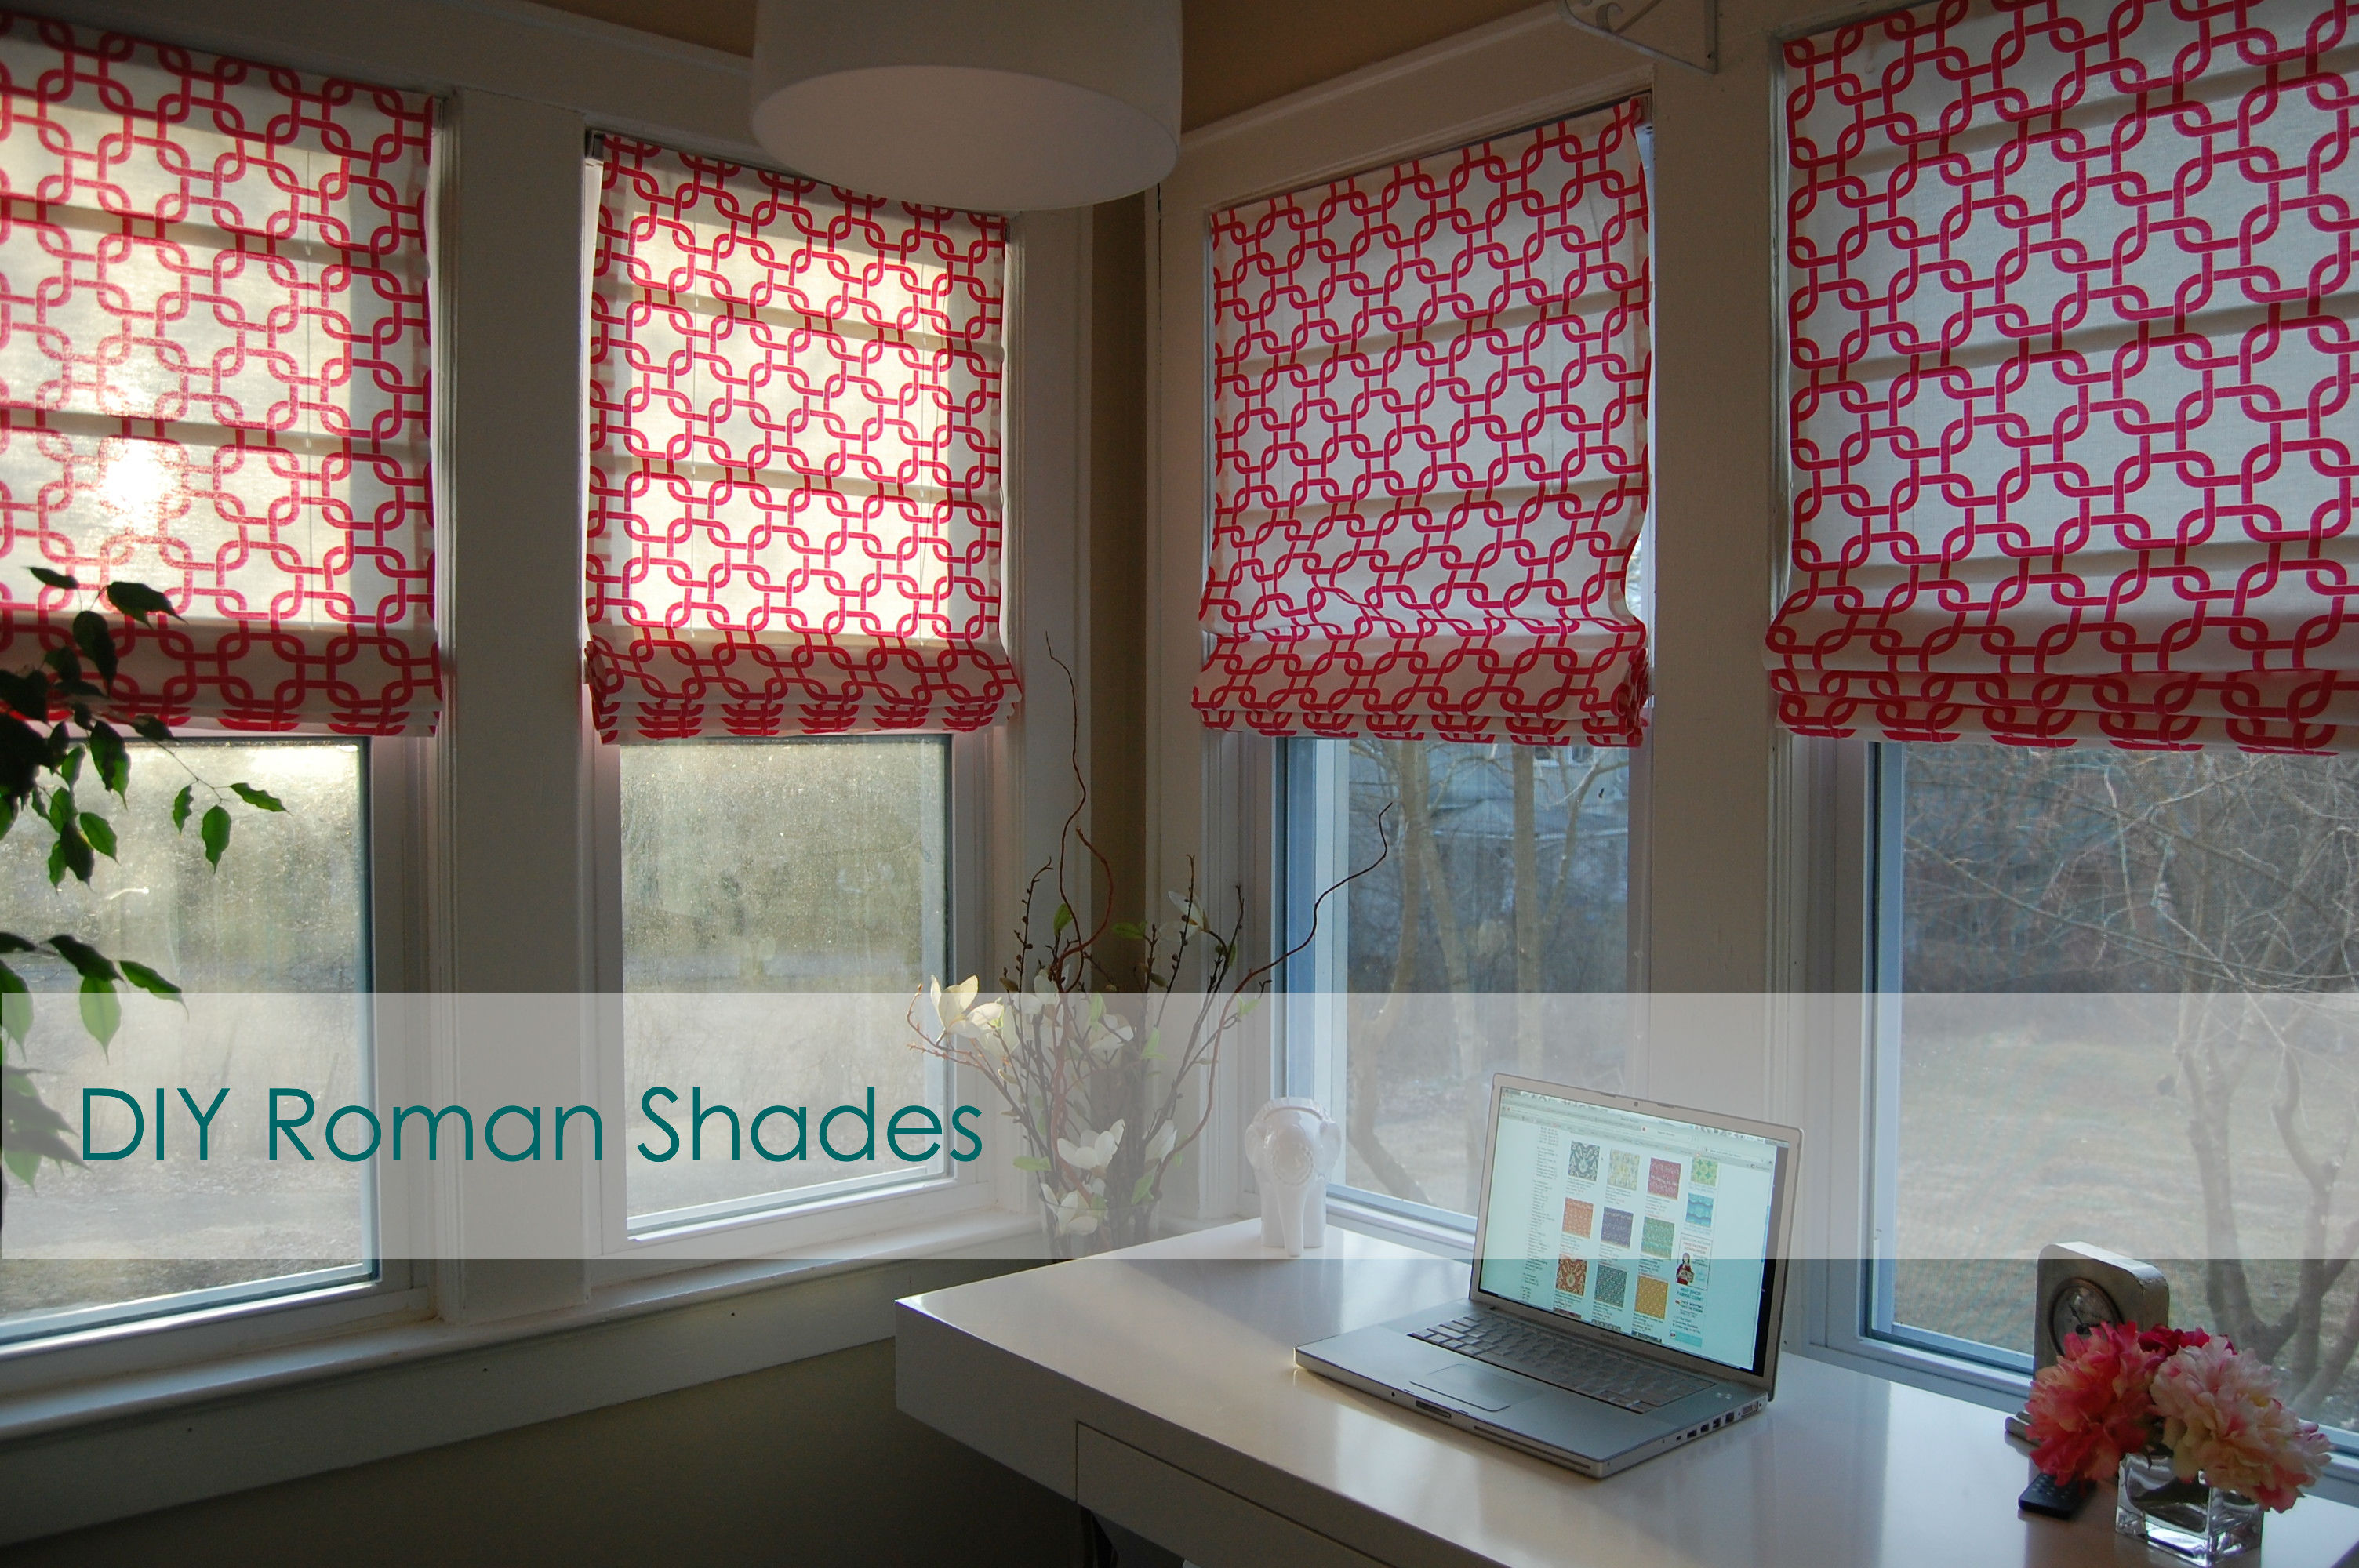 Diy Roman Shades Easy Diy Roman Shades